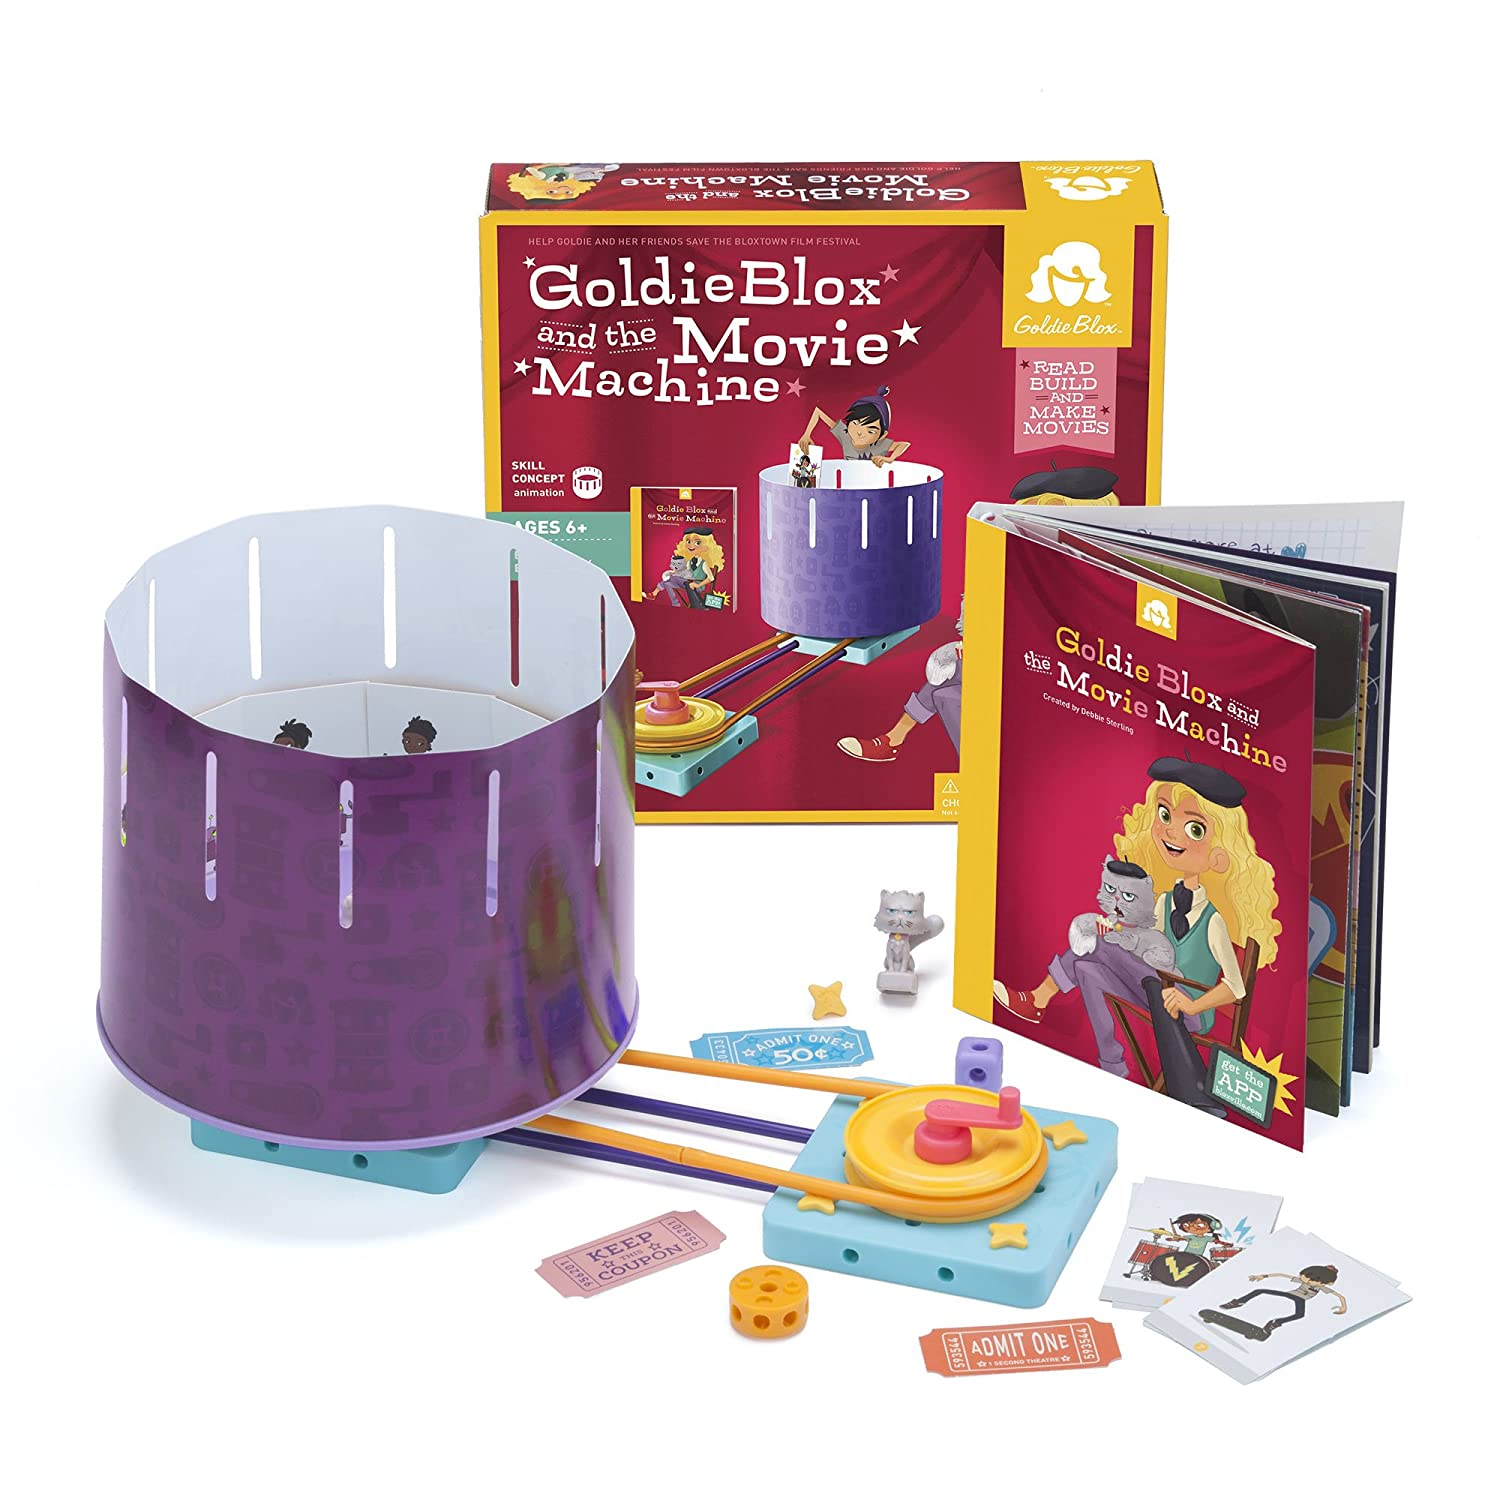 GoldieBlox and The Movie Machi...